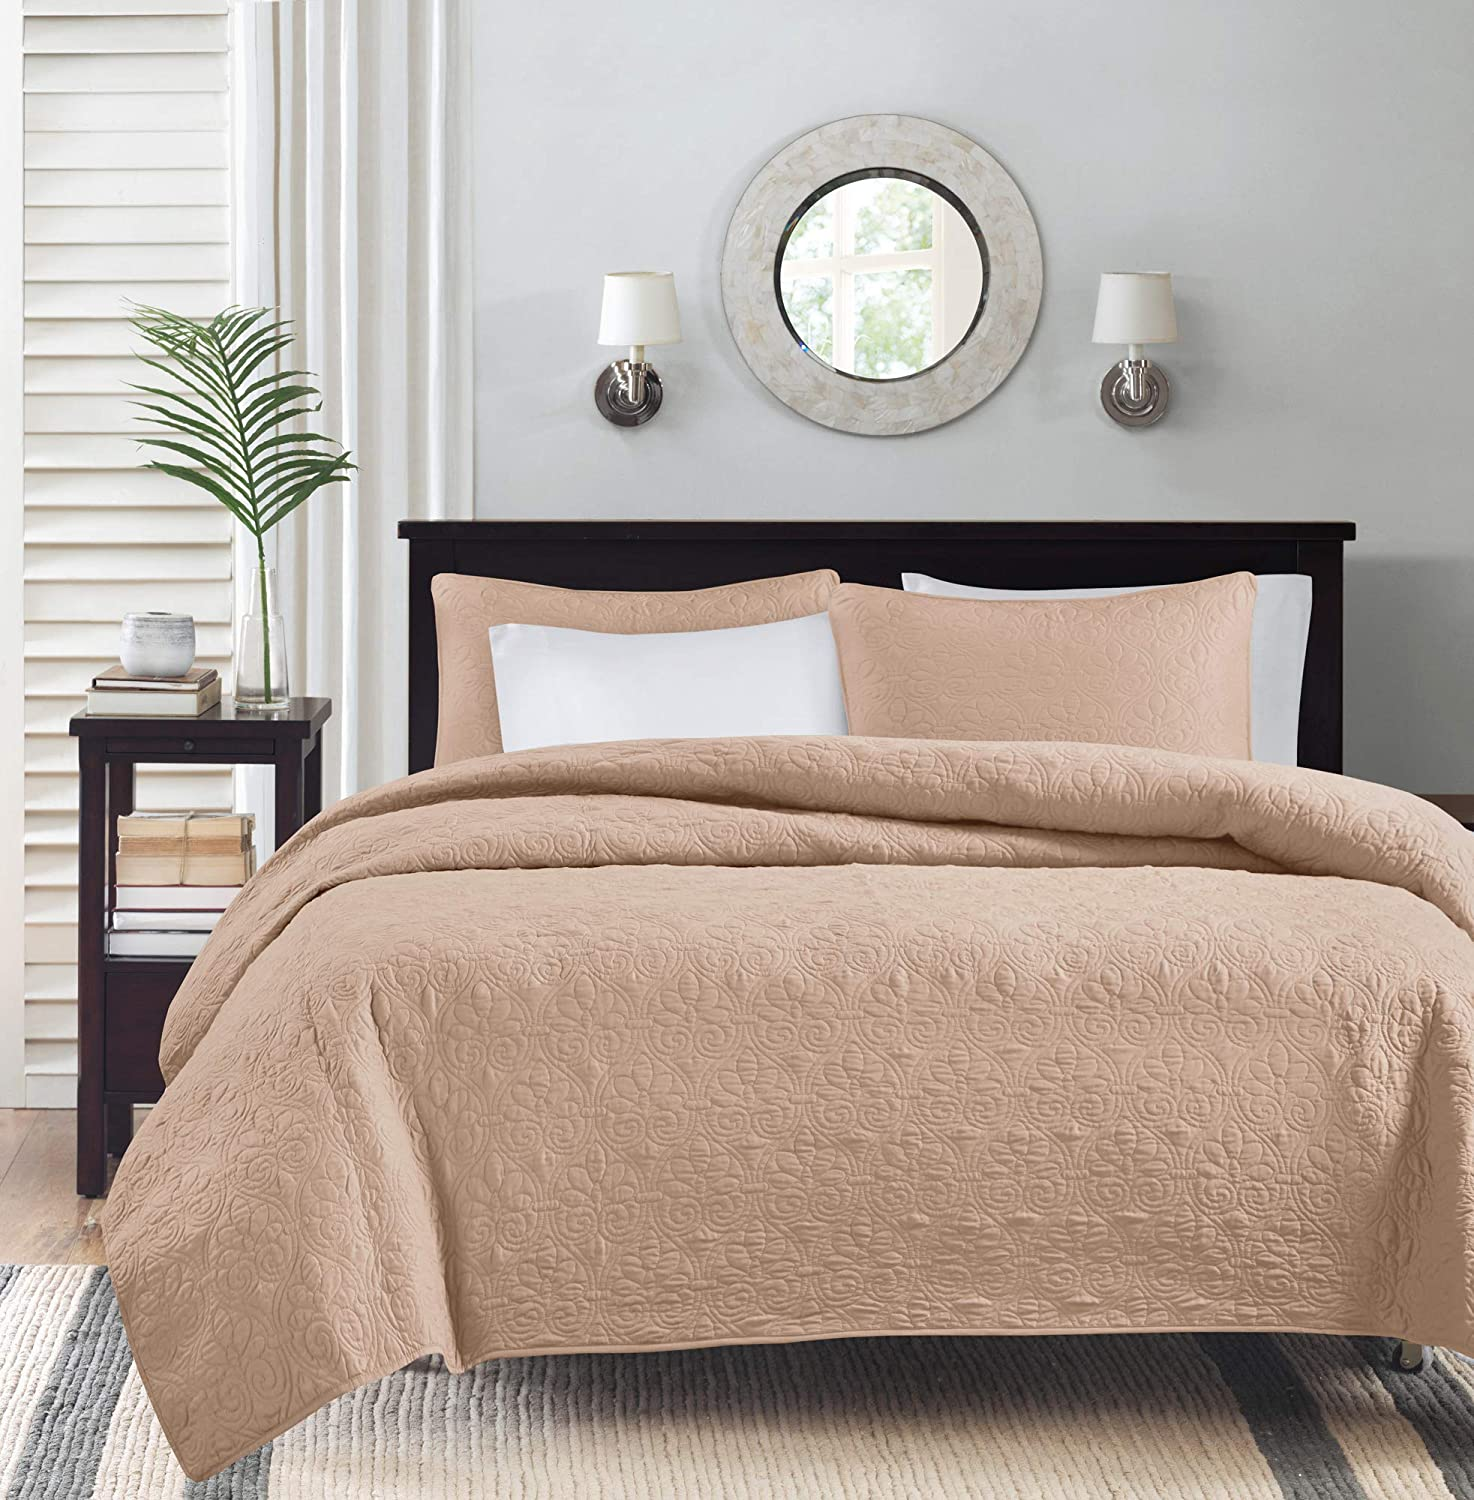 bluesh Full Queen Size Madison Park Quebec Dusty Pale bluee 3-Piece Quilted King Coverlet Set—For King or Cal King Bed –Ideal For Warm Climate Room Décor or Add-on For Extra Warmth